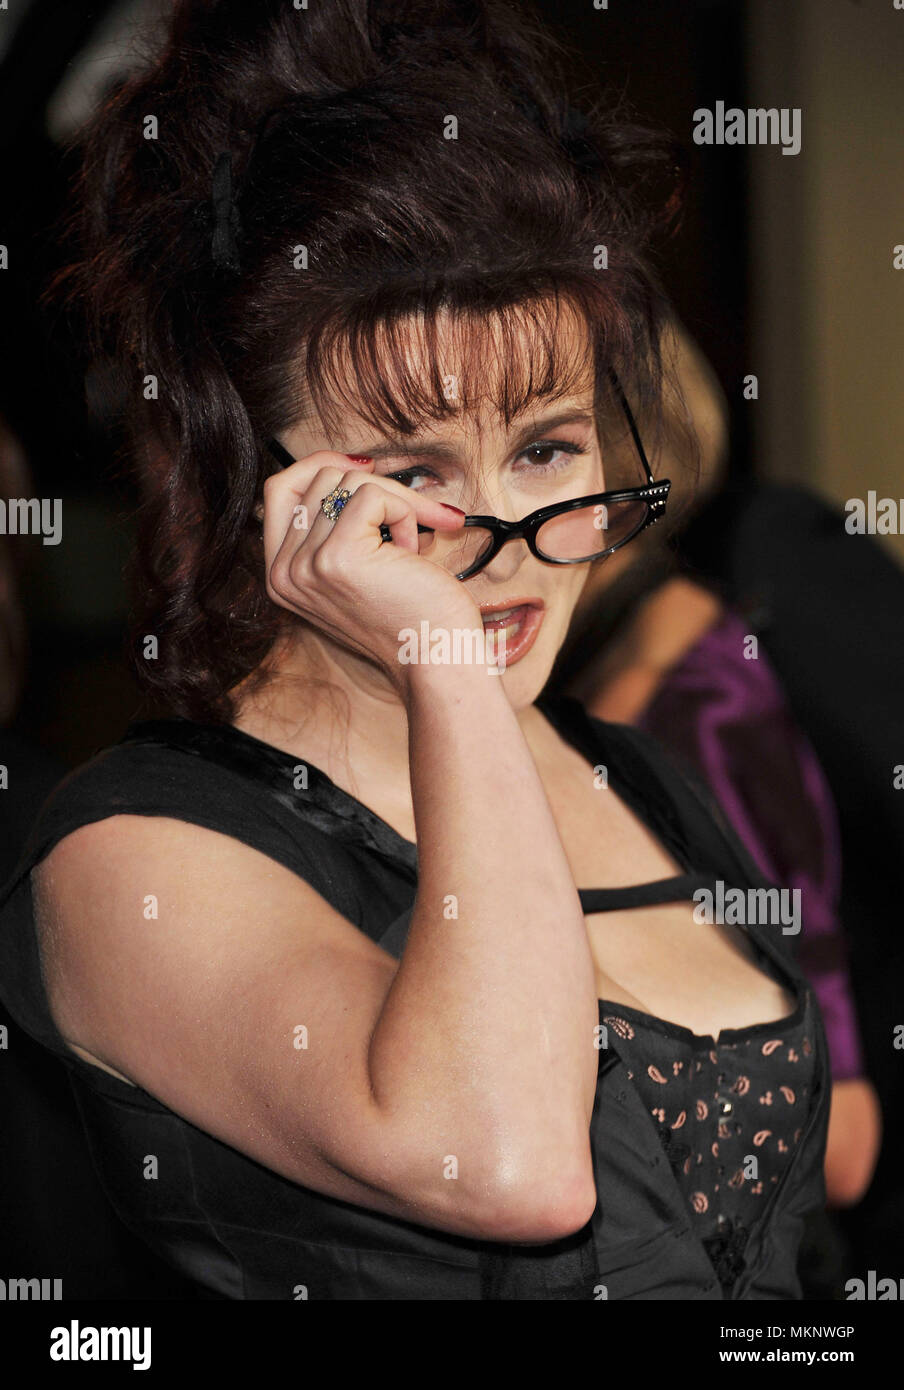 Bonham Carter Helena Event In Hollywood Life California High Resolution Stock Photography And Images Alamy